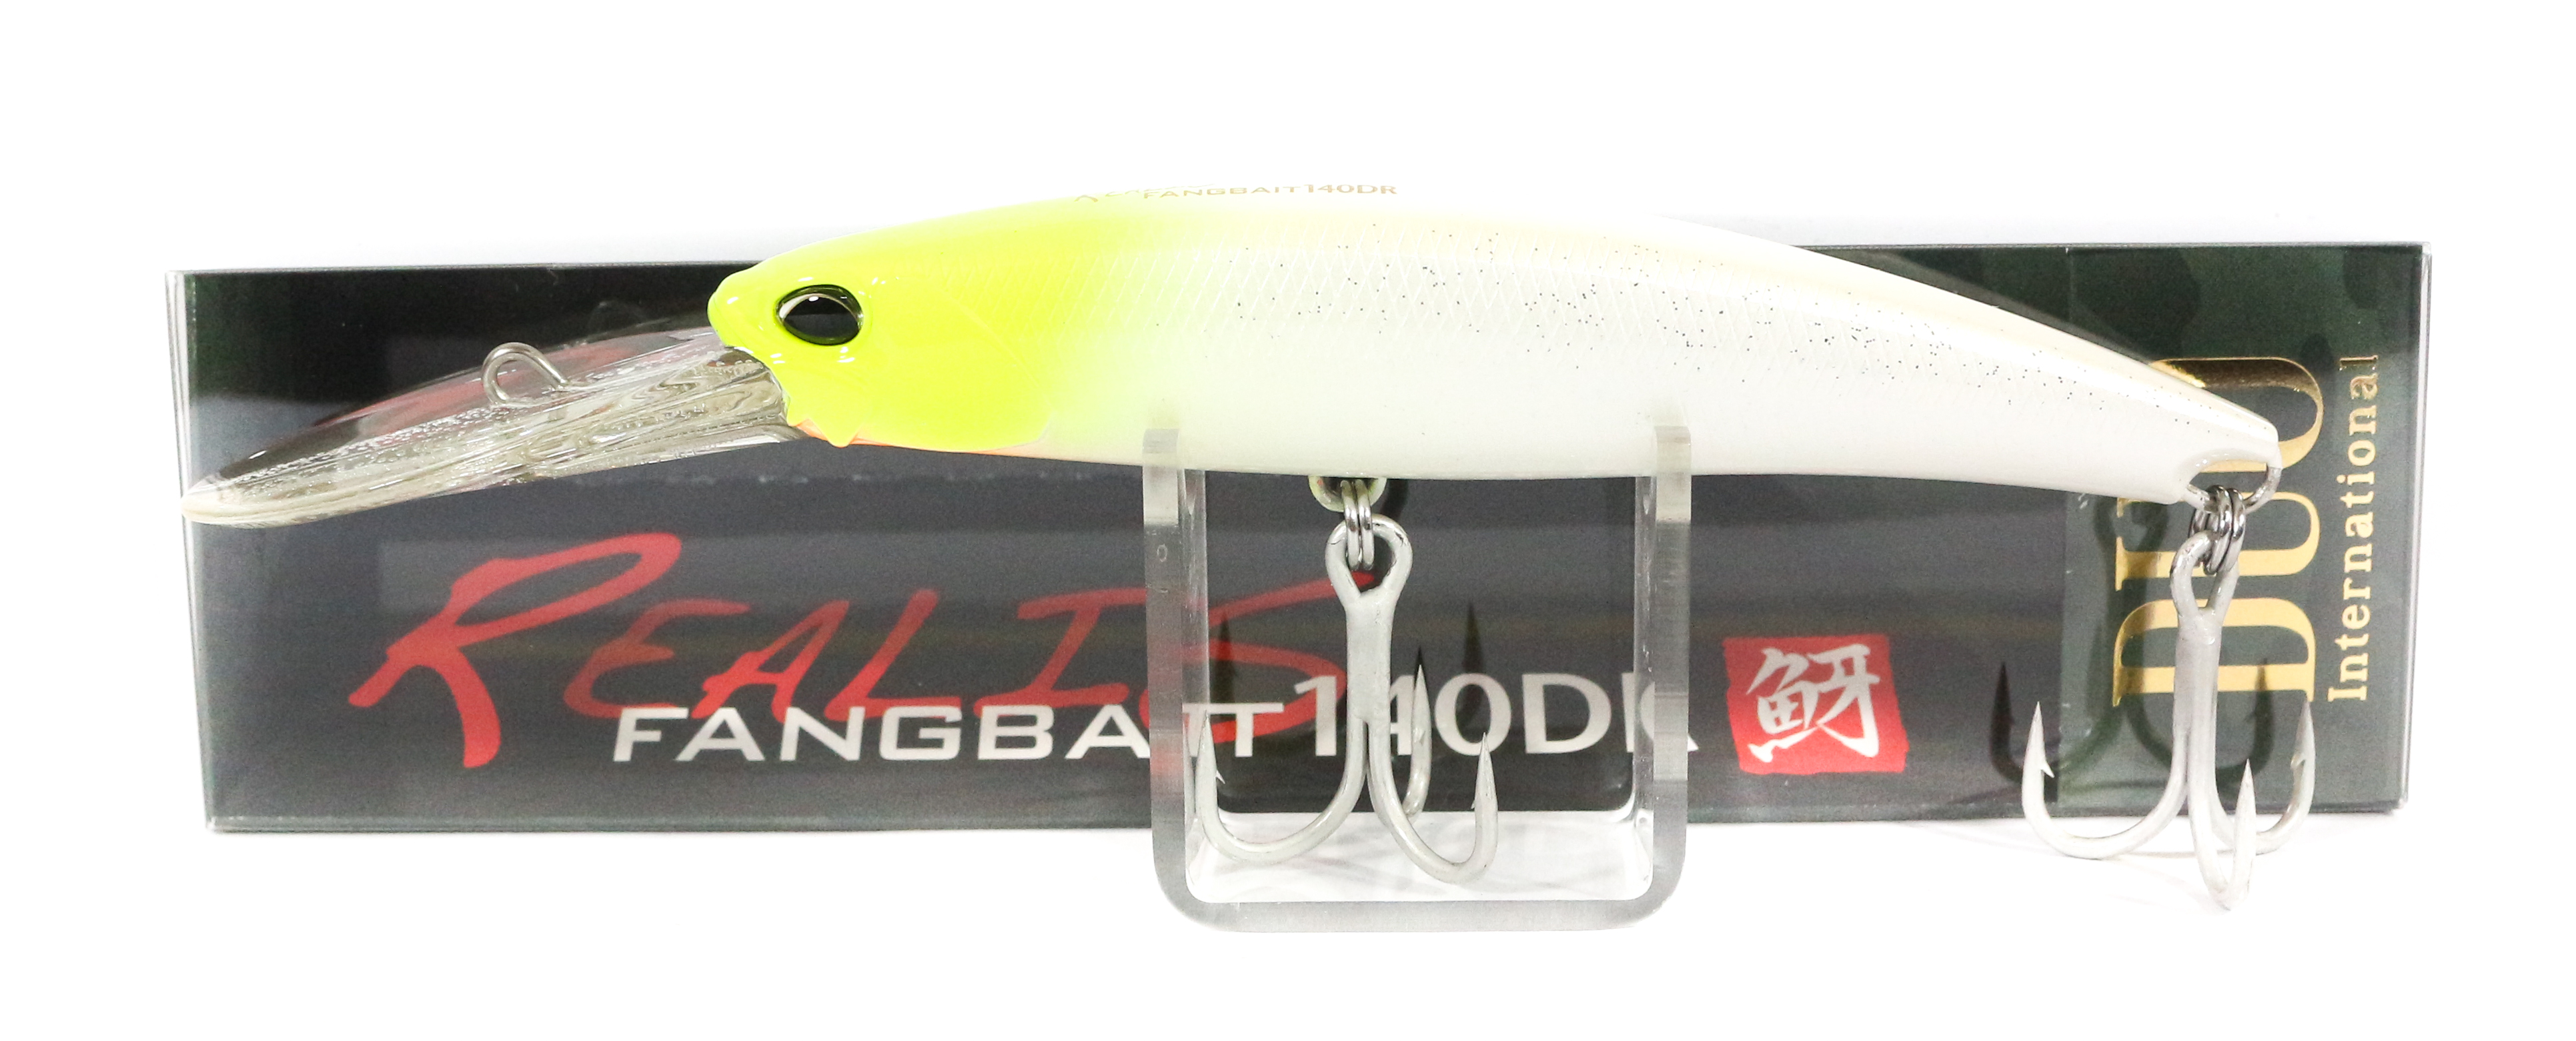 Sale Duo Realis Fangbait 140DR Floating Lure ACC3302 (3854)